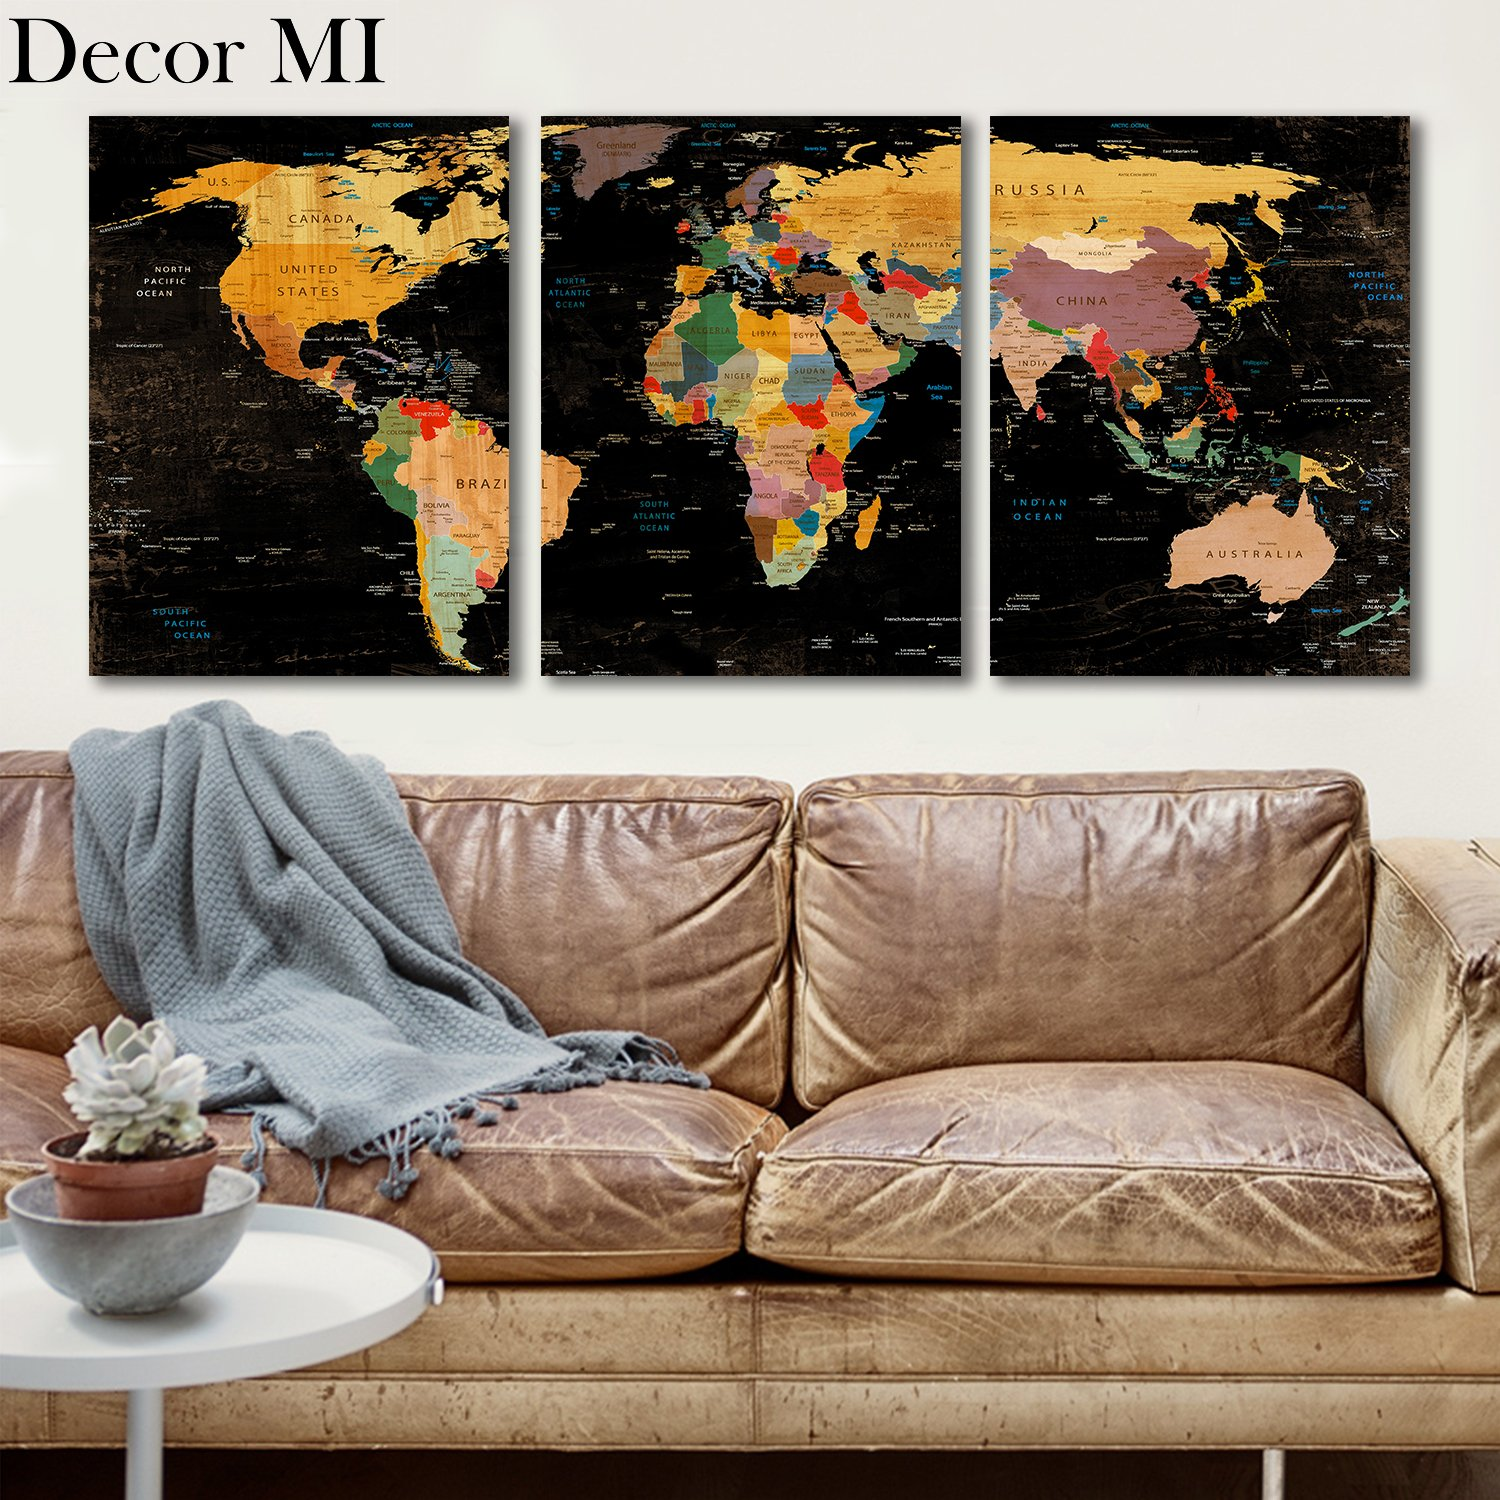 travelers for map decoration inspired oh deco decor world prints home photo ideas blog decorating